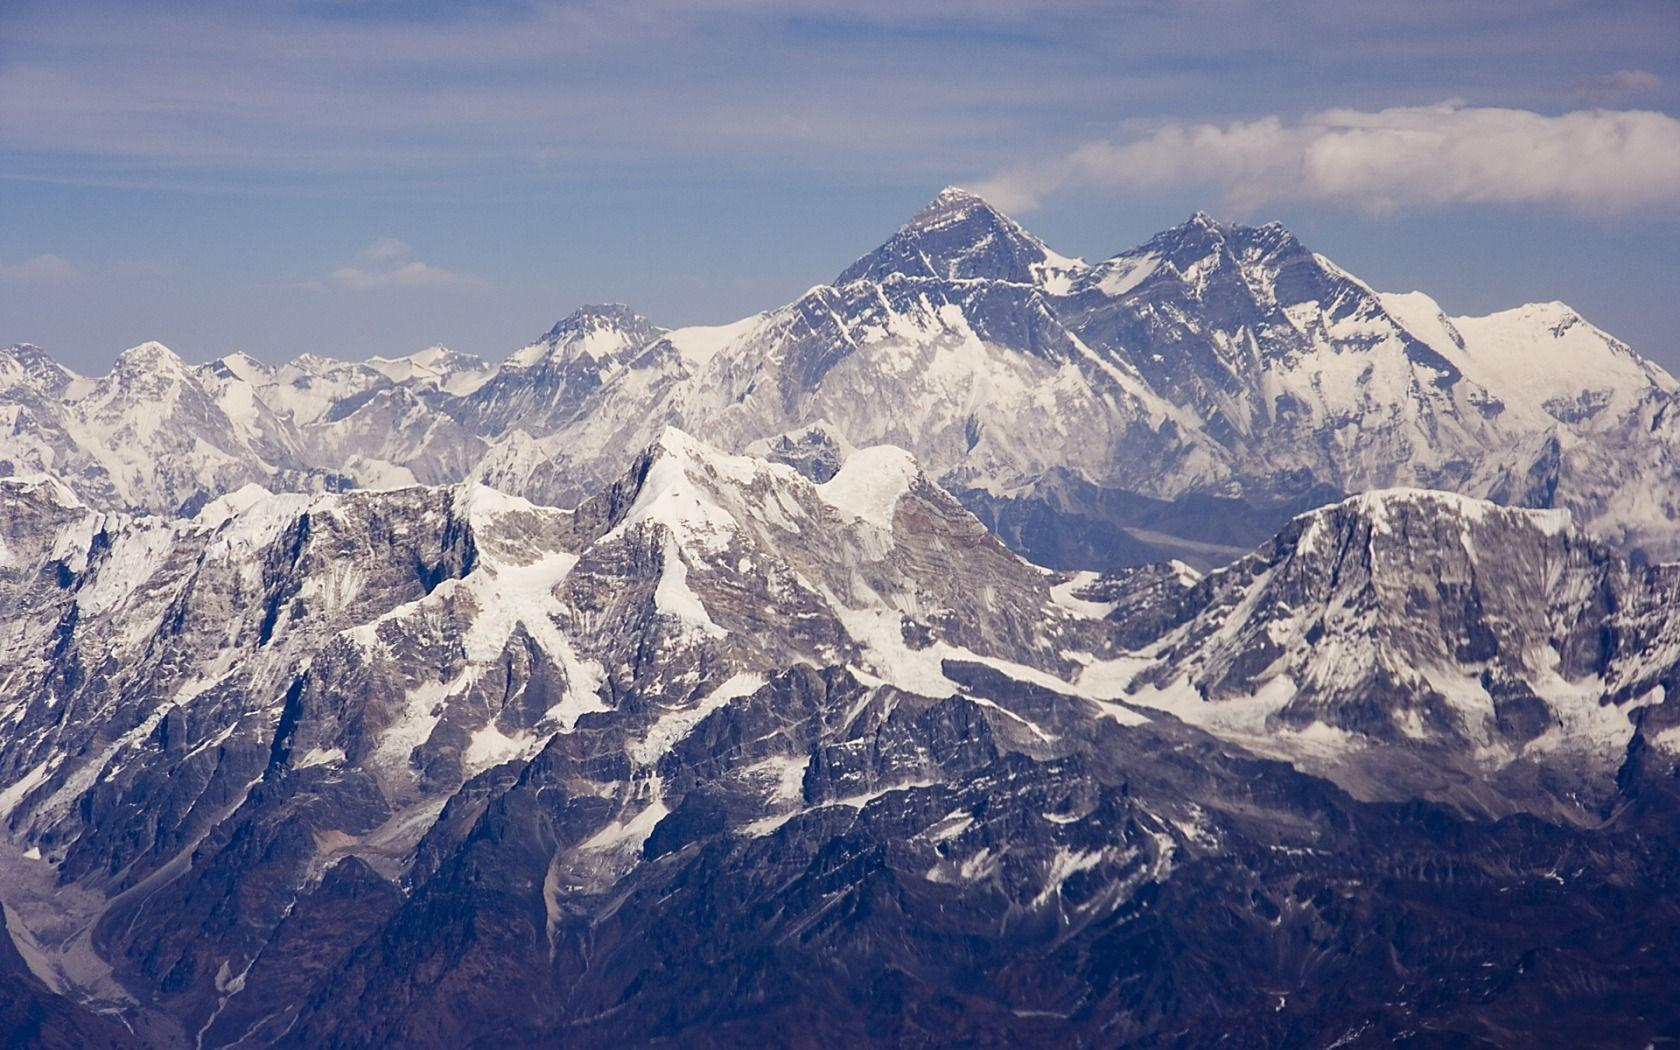 Mount Everest Hd desktop Wallpapers